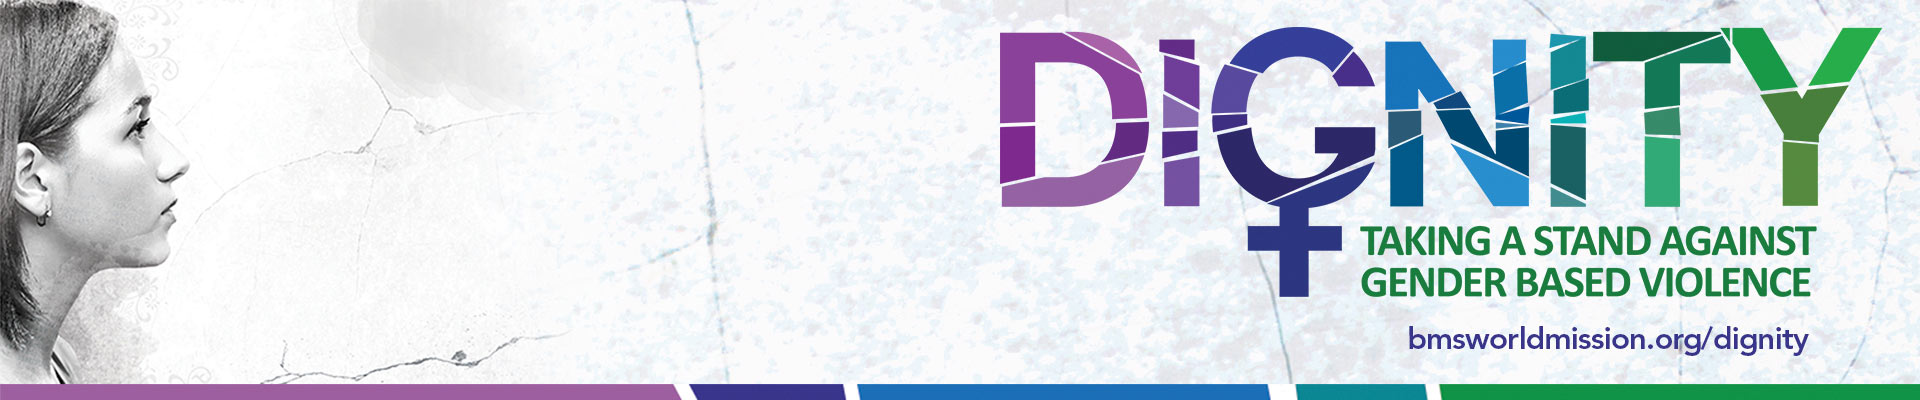 dignity-banner